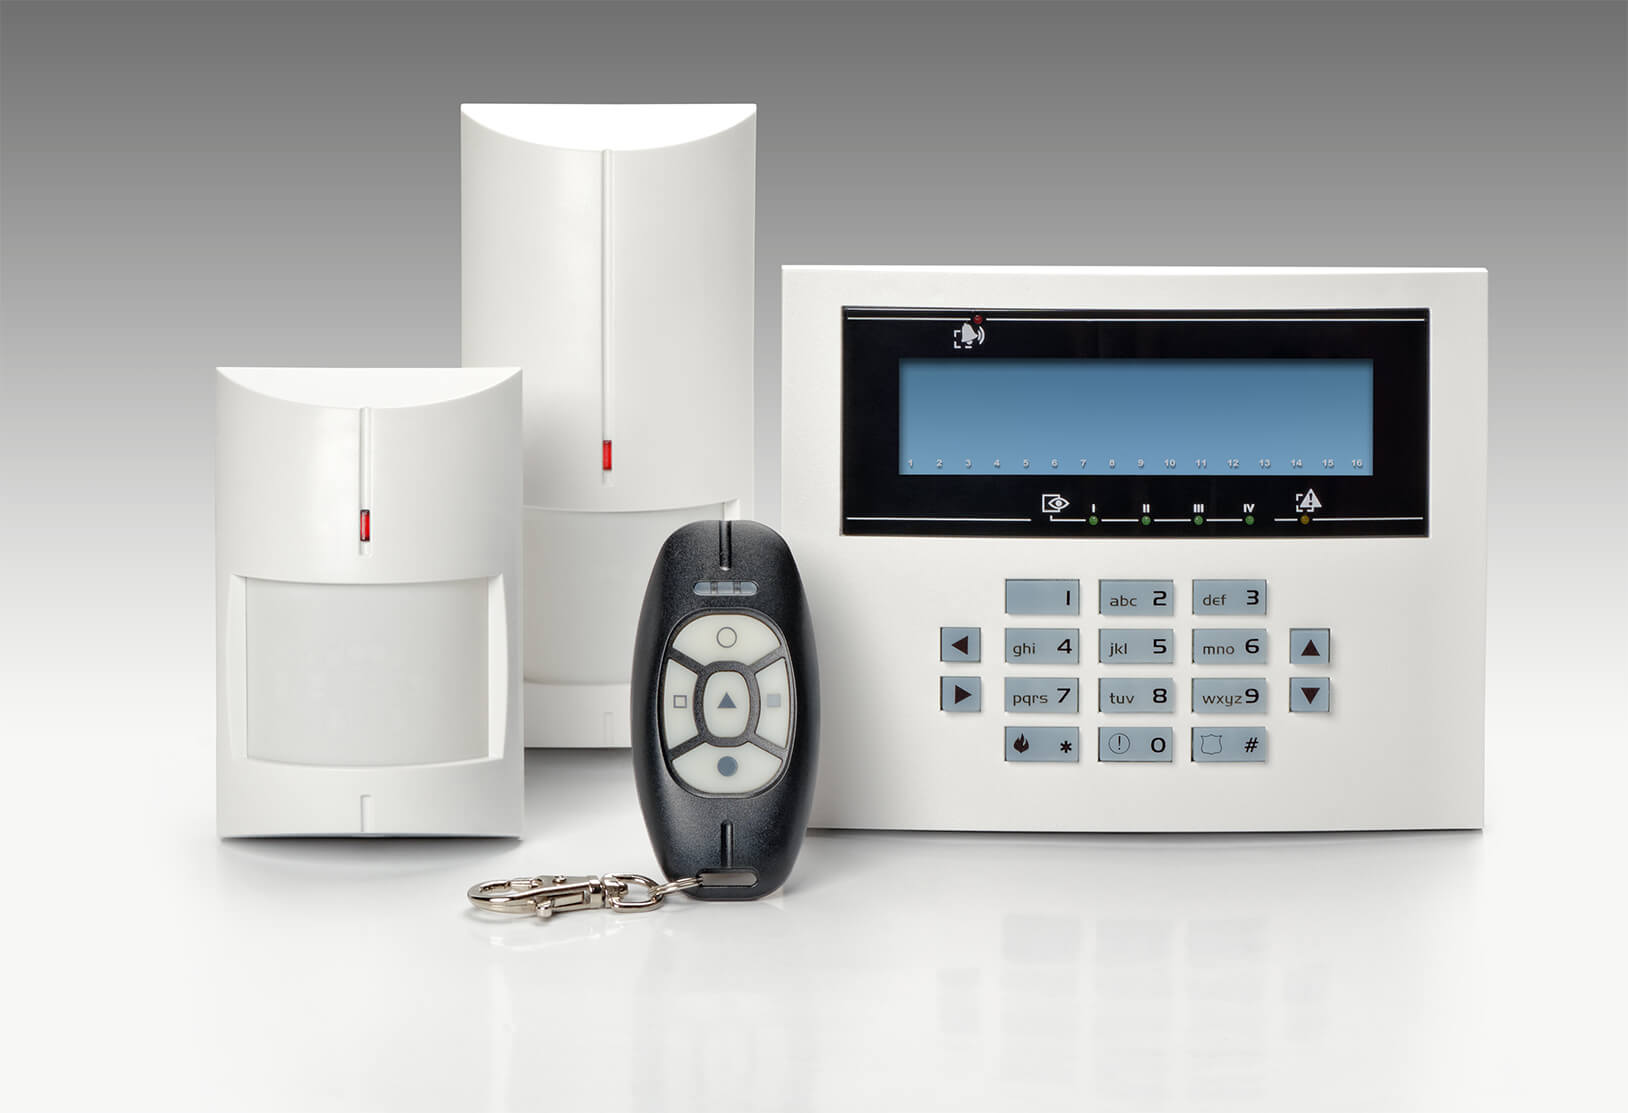 Business & Residential NSI / NACOSS Approved Burglar Alarms In Paddington NW6 - Local Paddington NW6 security company.Call 02078872244 - Dedicated to Safety & Security. Companies, shops and homes ..